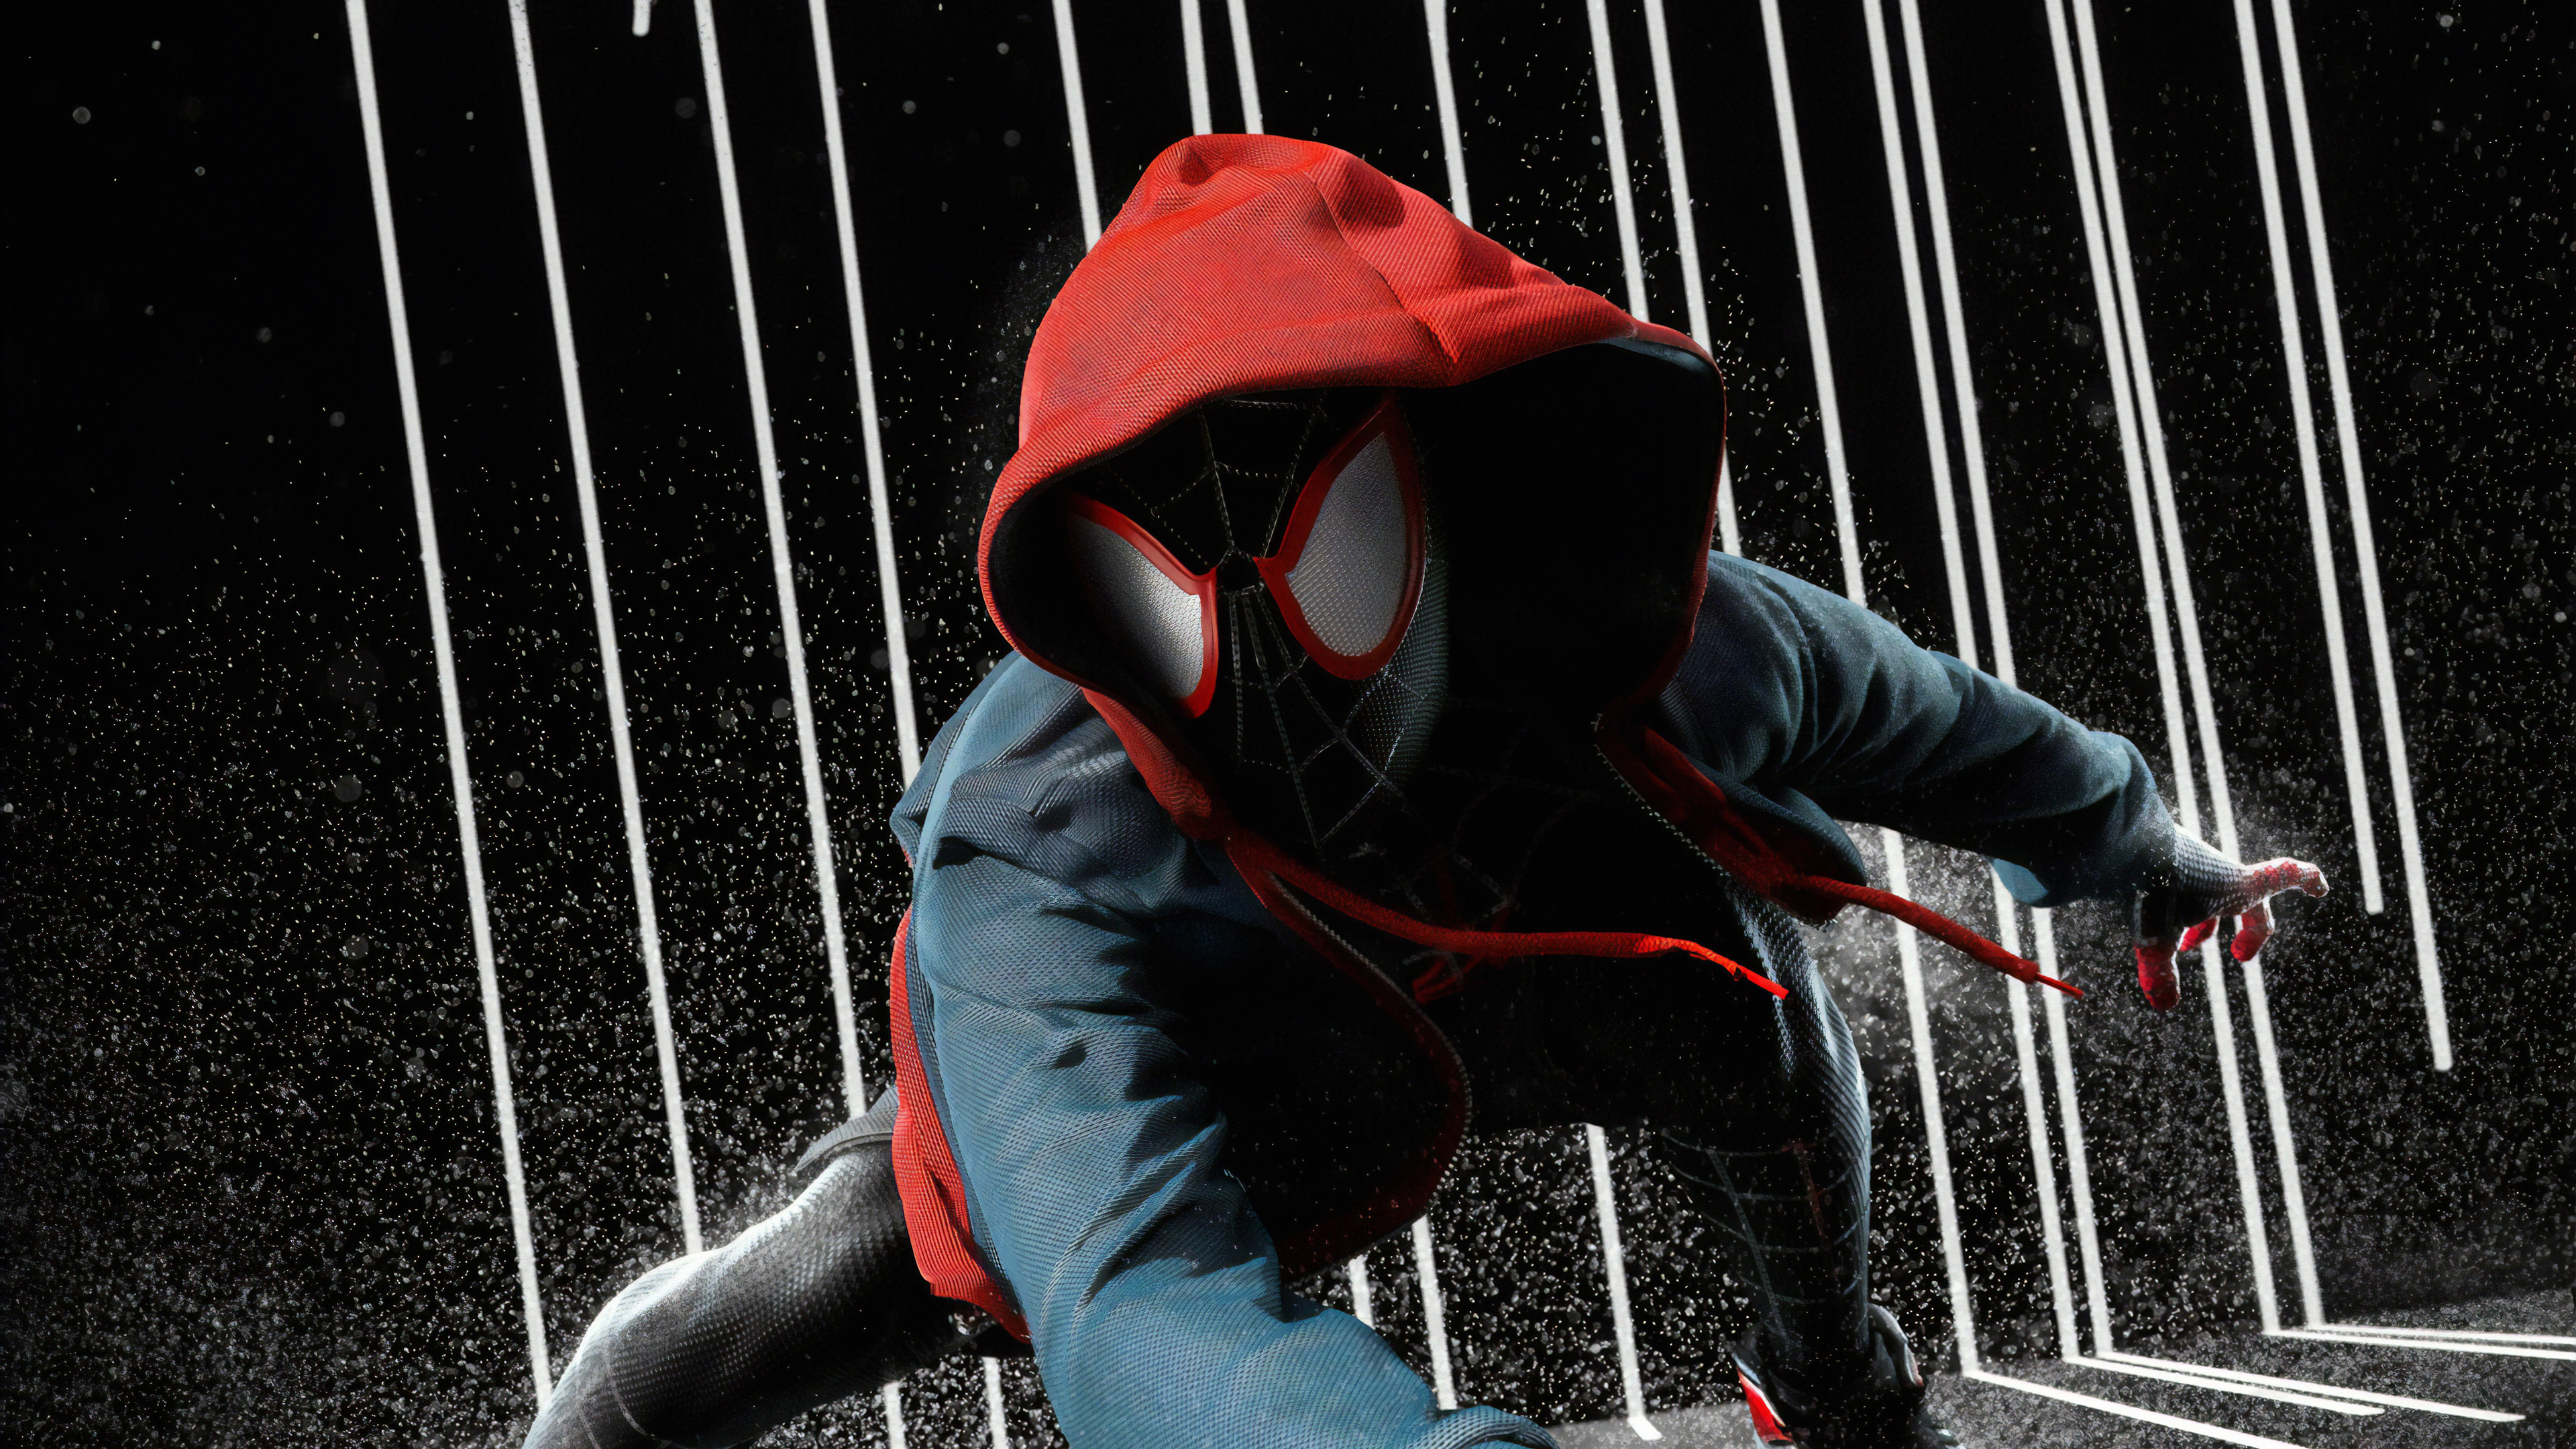 spiderman 4k what up danger 1562106122 - Spiderman 4k What Up Danger - superheroes wallpapers, spiderman wallpapers, hd-wallpapers, digital art wallpapers, artwork wallpapers, artstation wallpapers, artist wallpapers, 4k-wallpapers